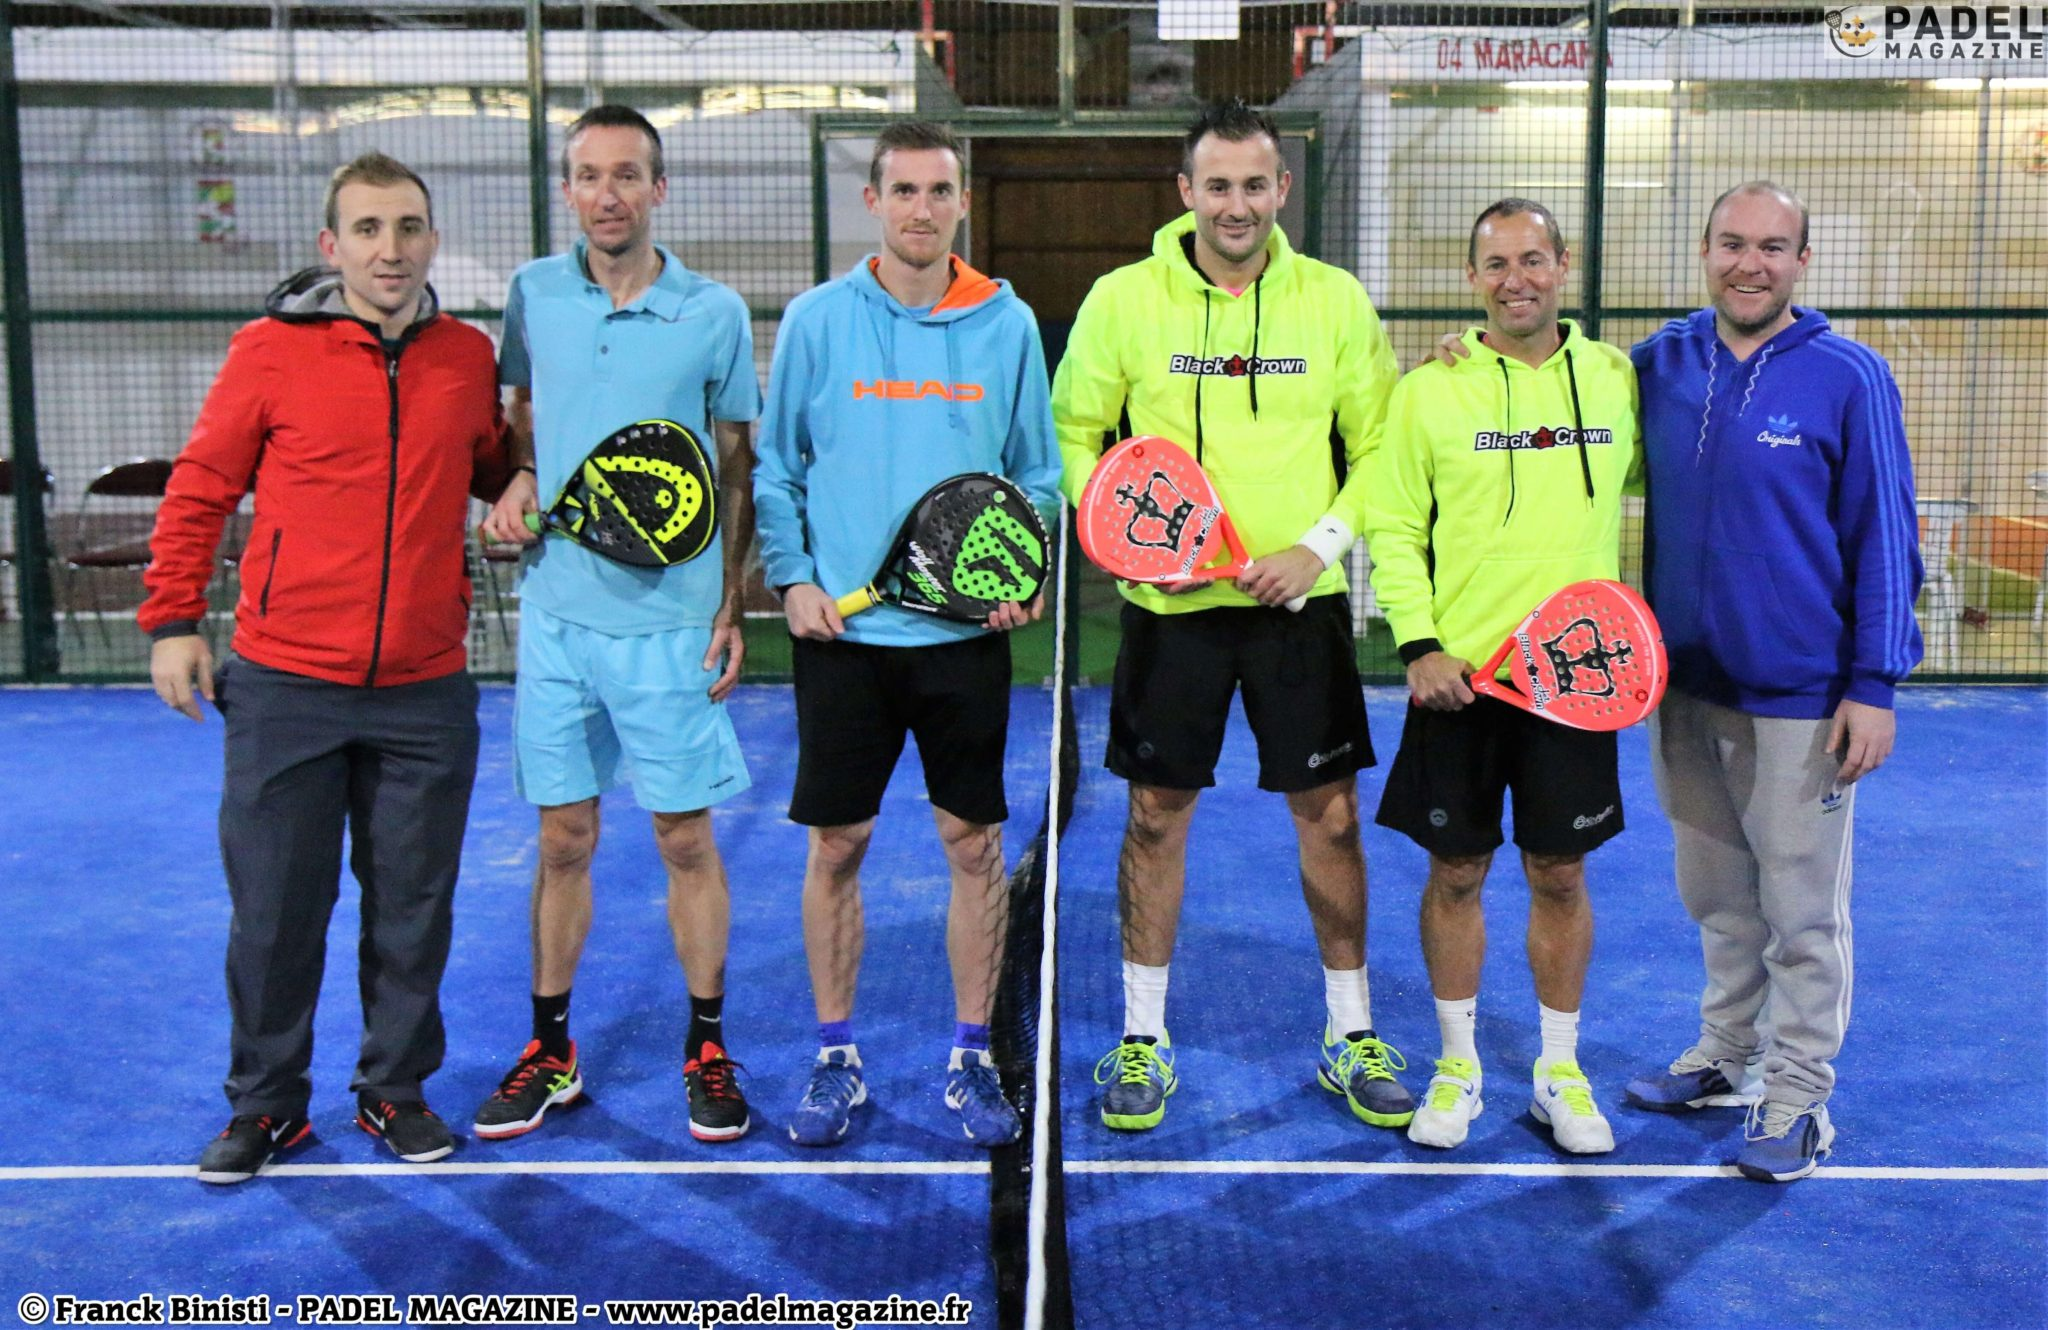 Lapouge / Veber wins the Master My Padel Passion 2016